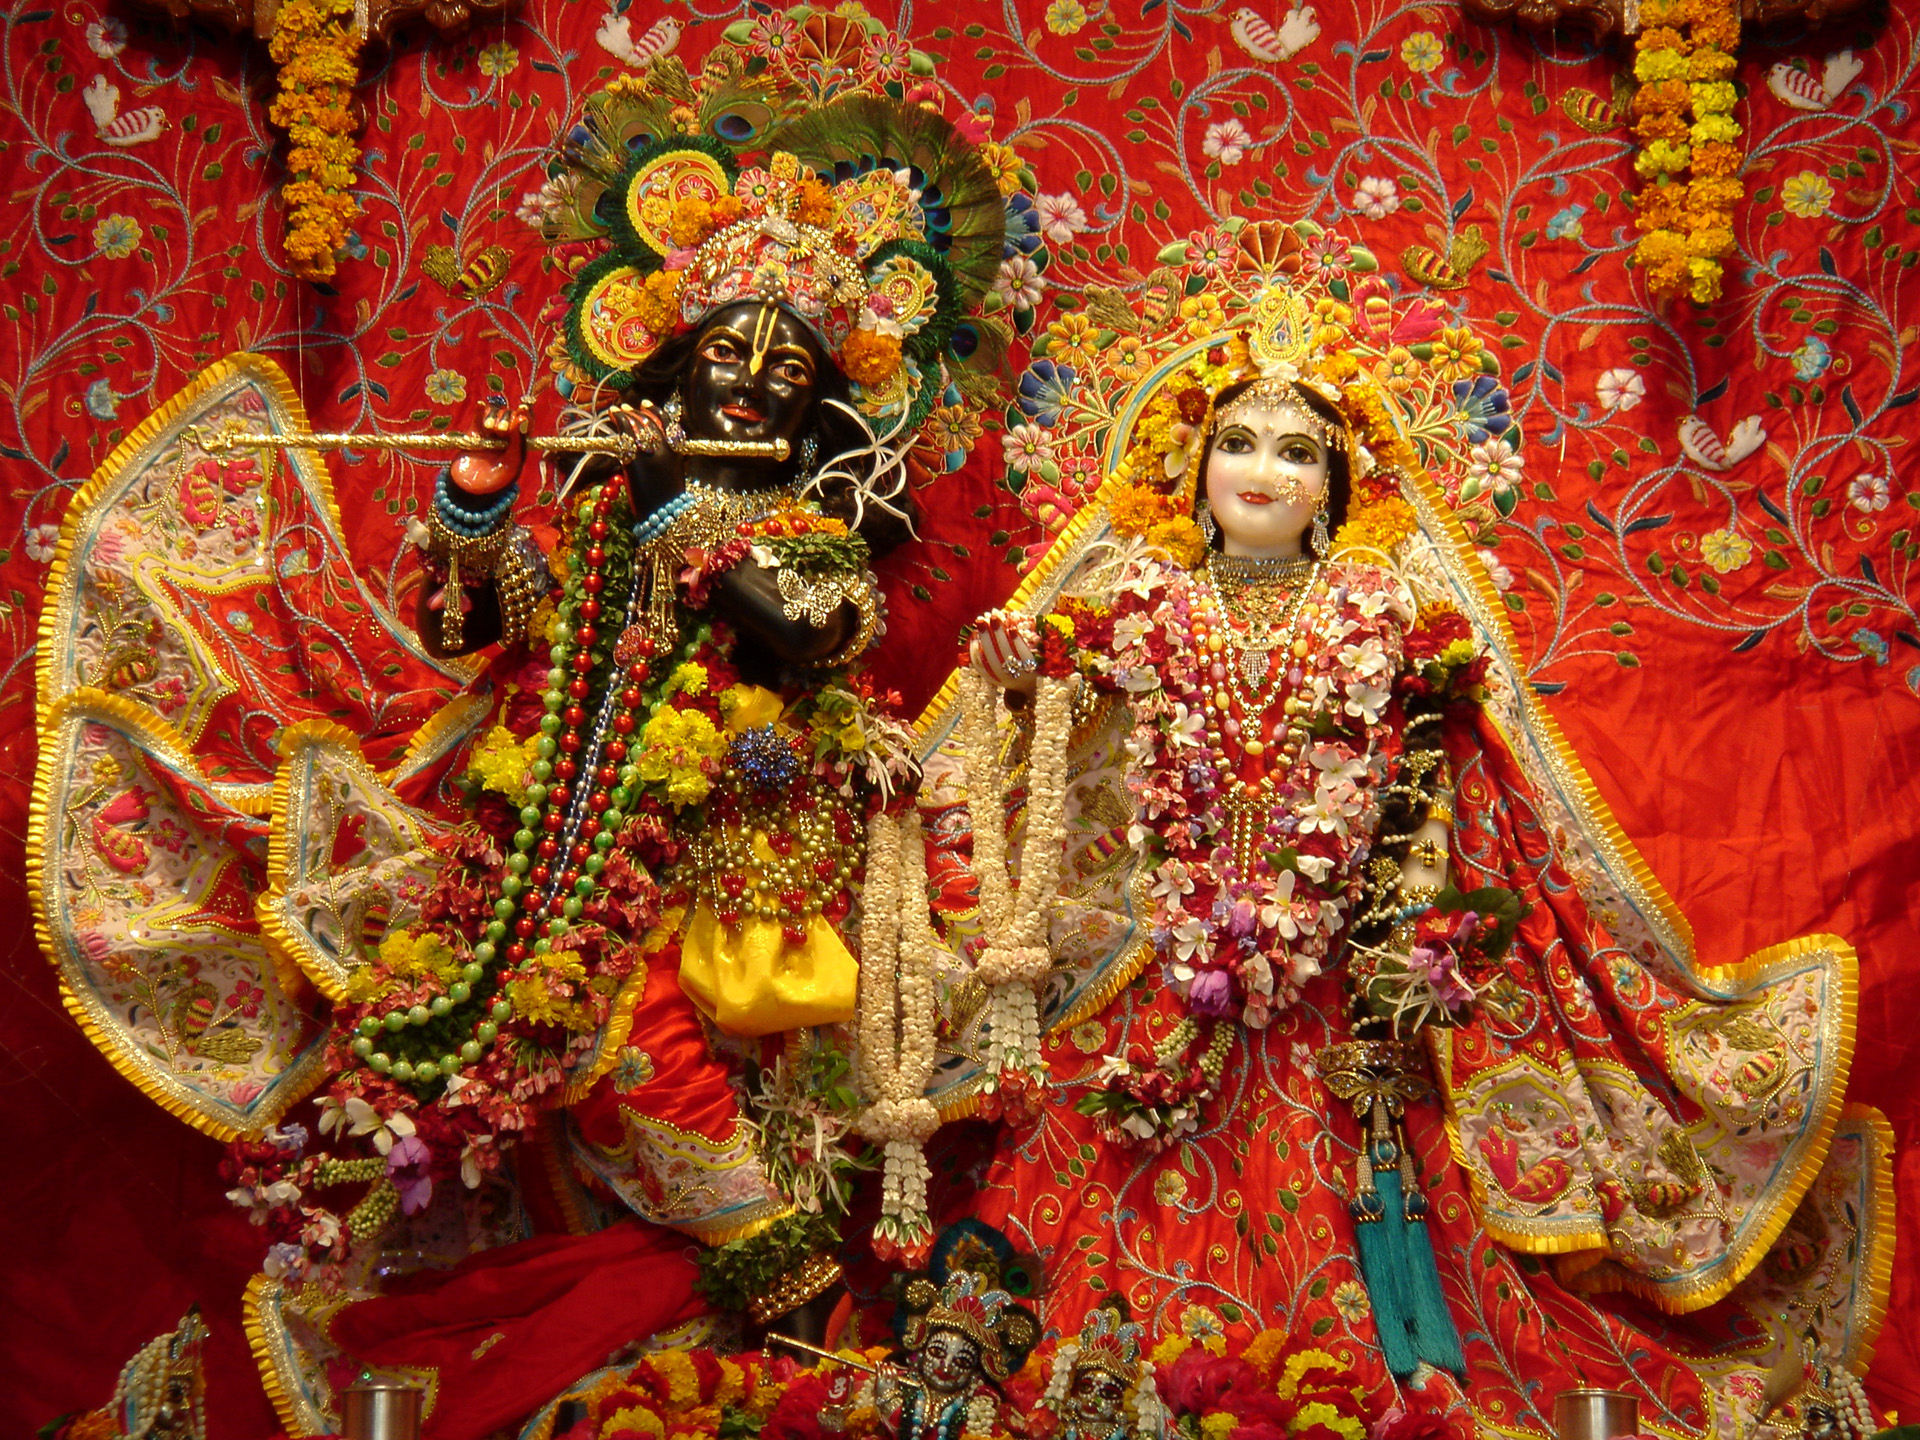 A sculpture of Krishna and Radha inside a temple in Vrindavan